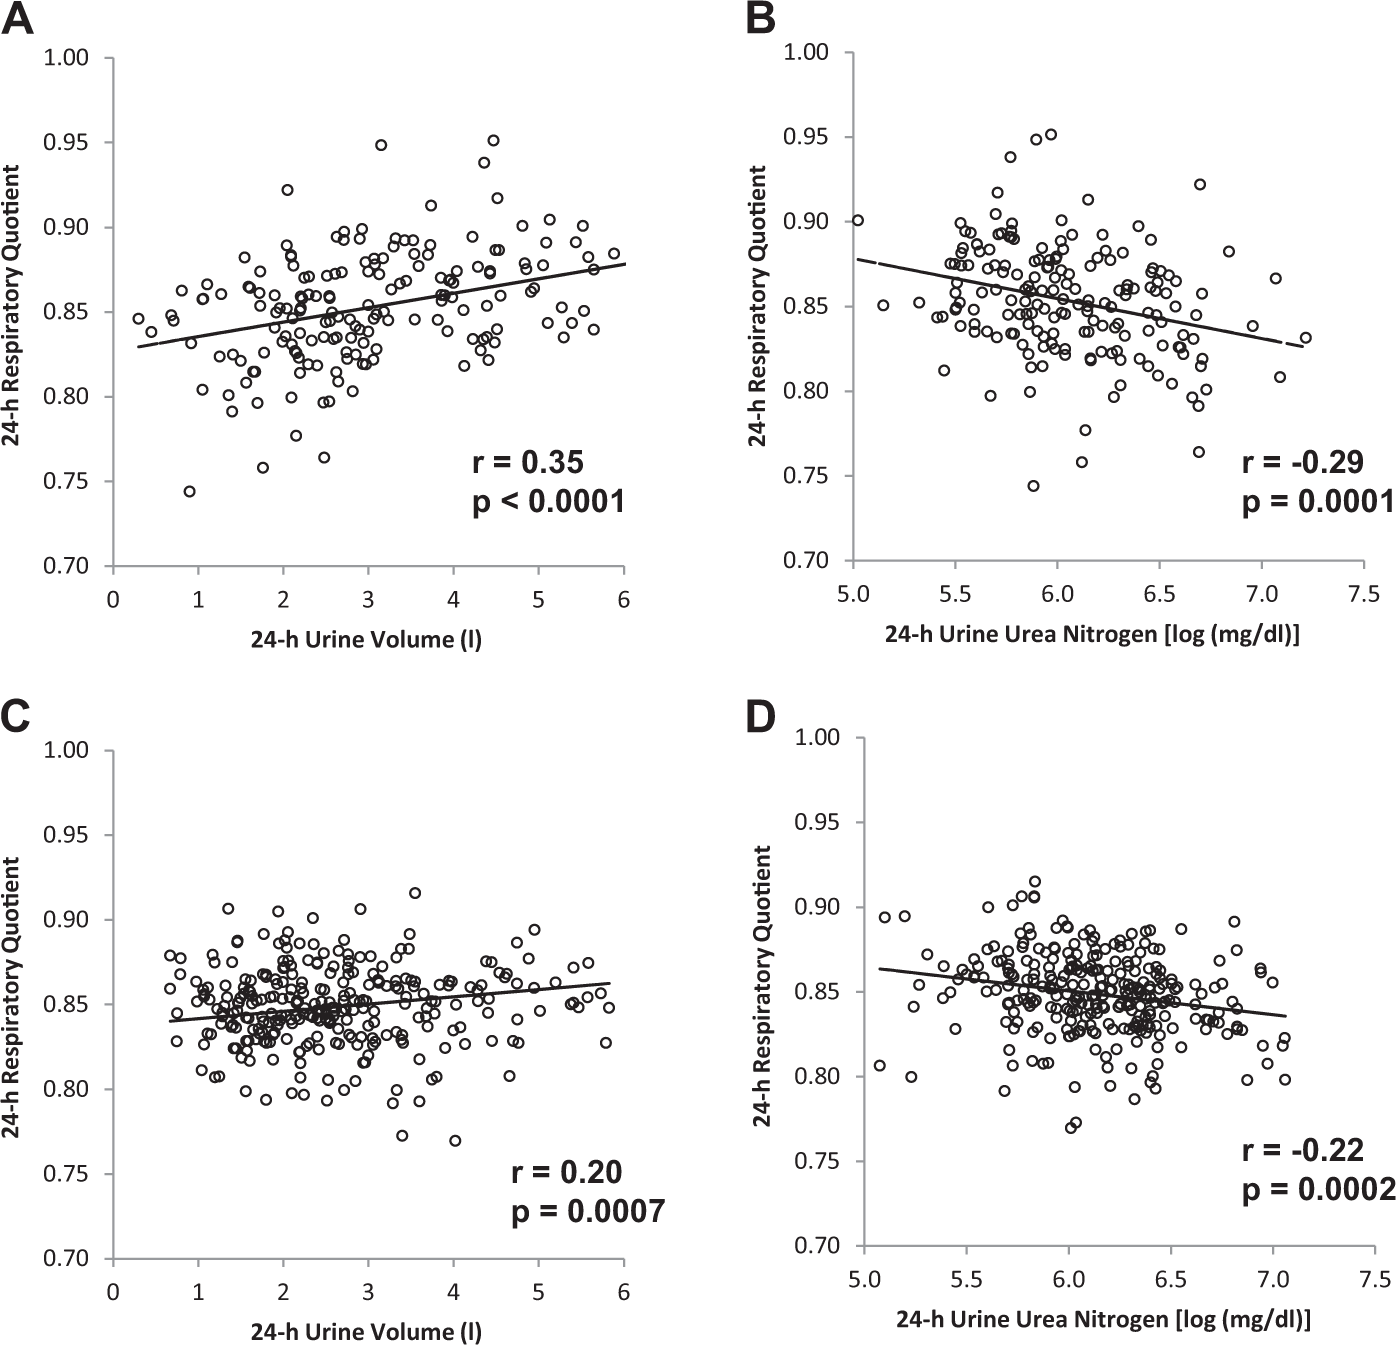 Hydration biomarkers and copeptin: relationship with ad